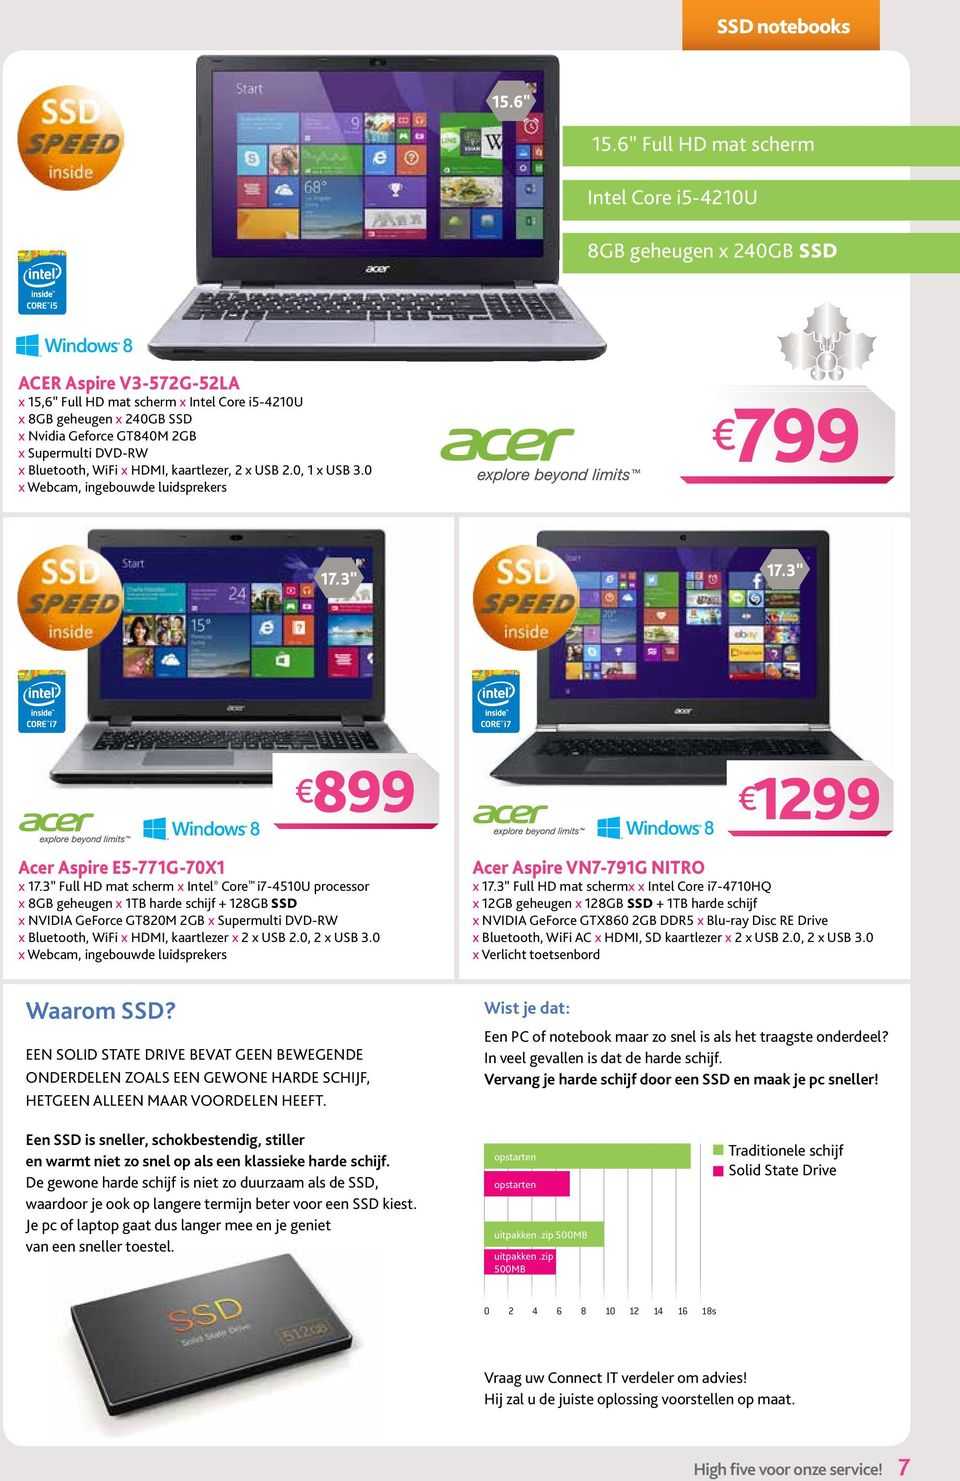 Supermulti DVD-RW x Bluetooth, WiFi x HDMI, kaartlezer, 2 x USB 2.0, 1 x USB 3.0 x Webcam, ingebouwde luidsprekers 7 8 12 Acer Aspire E5-771G-70X1 x 17.